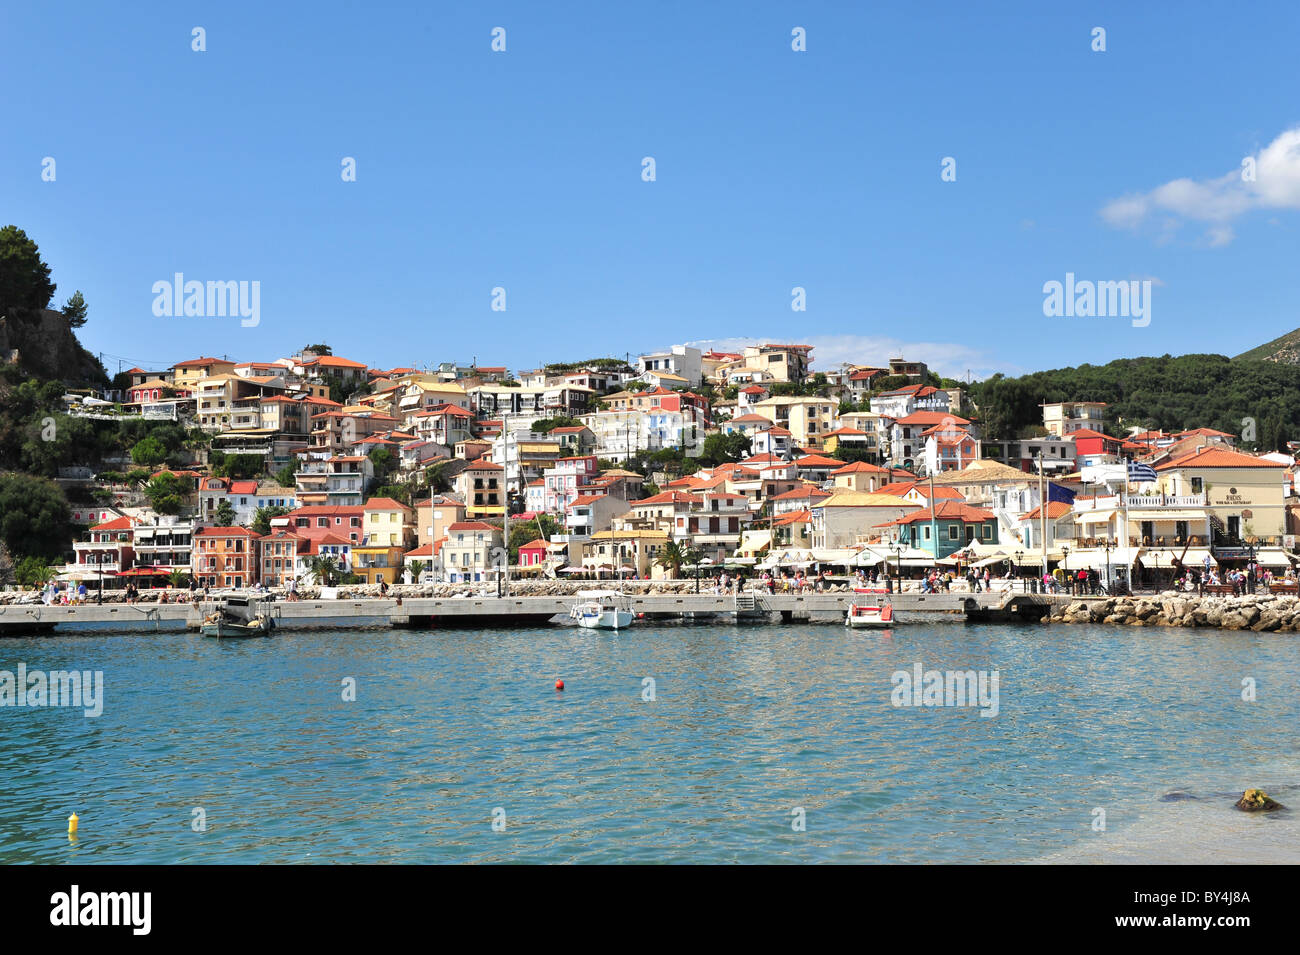 The hillside town of Parga on the Greek mainland - Stock Image